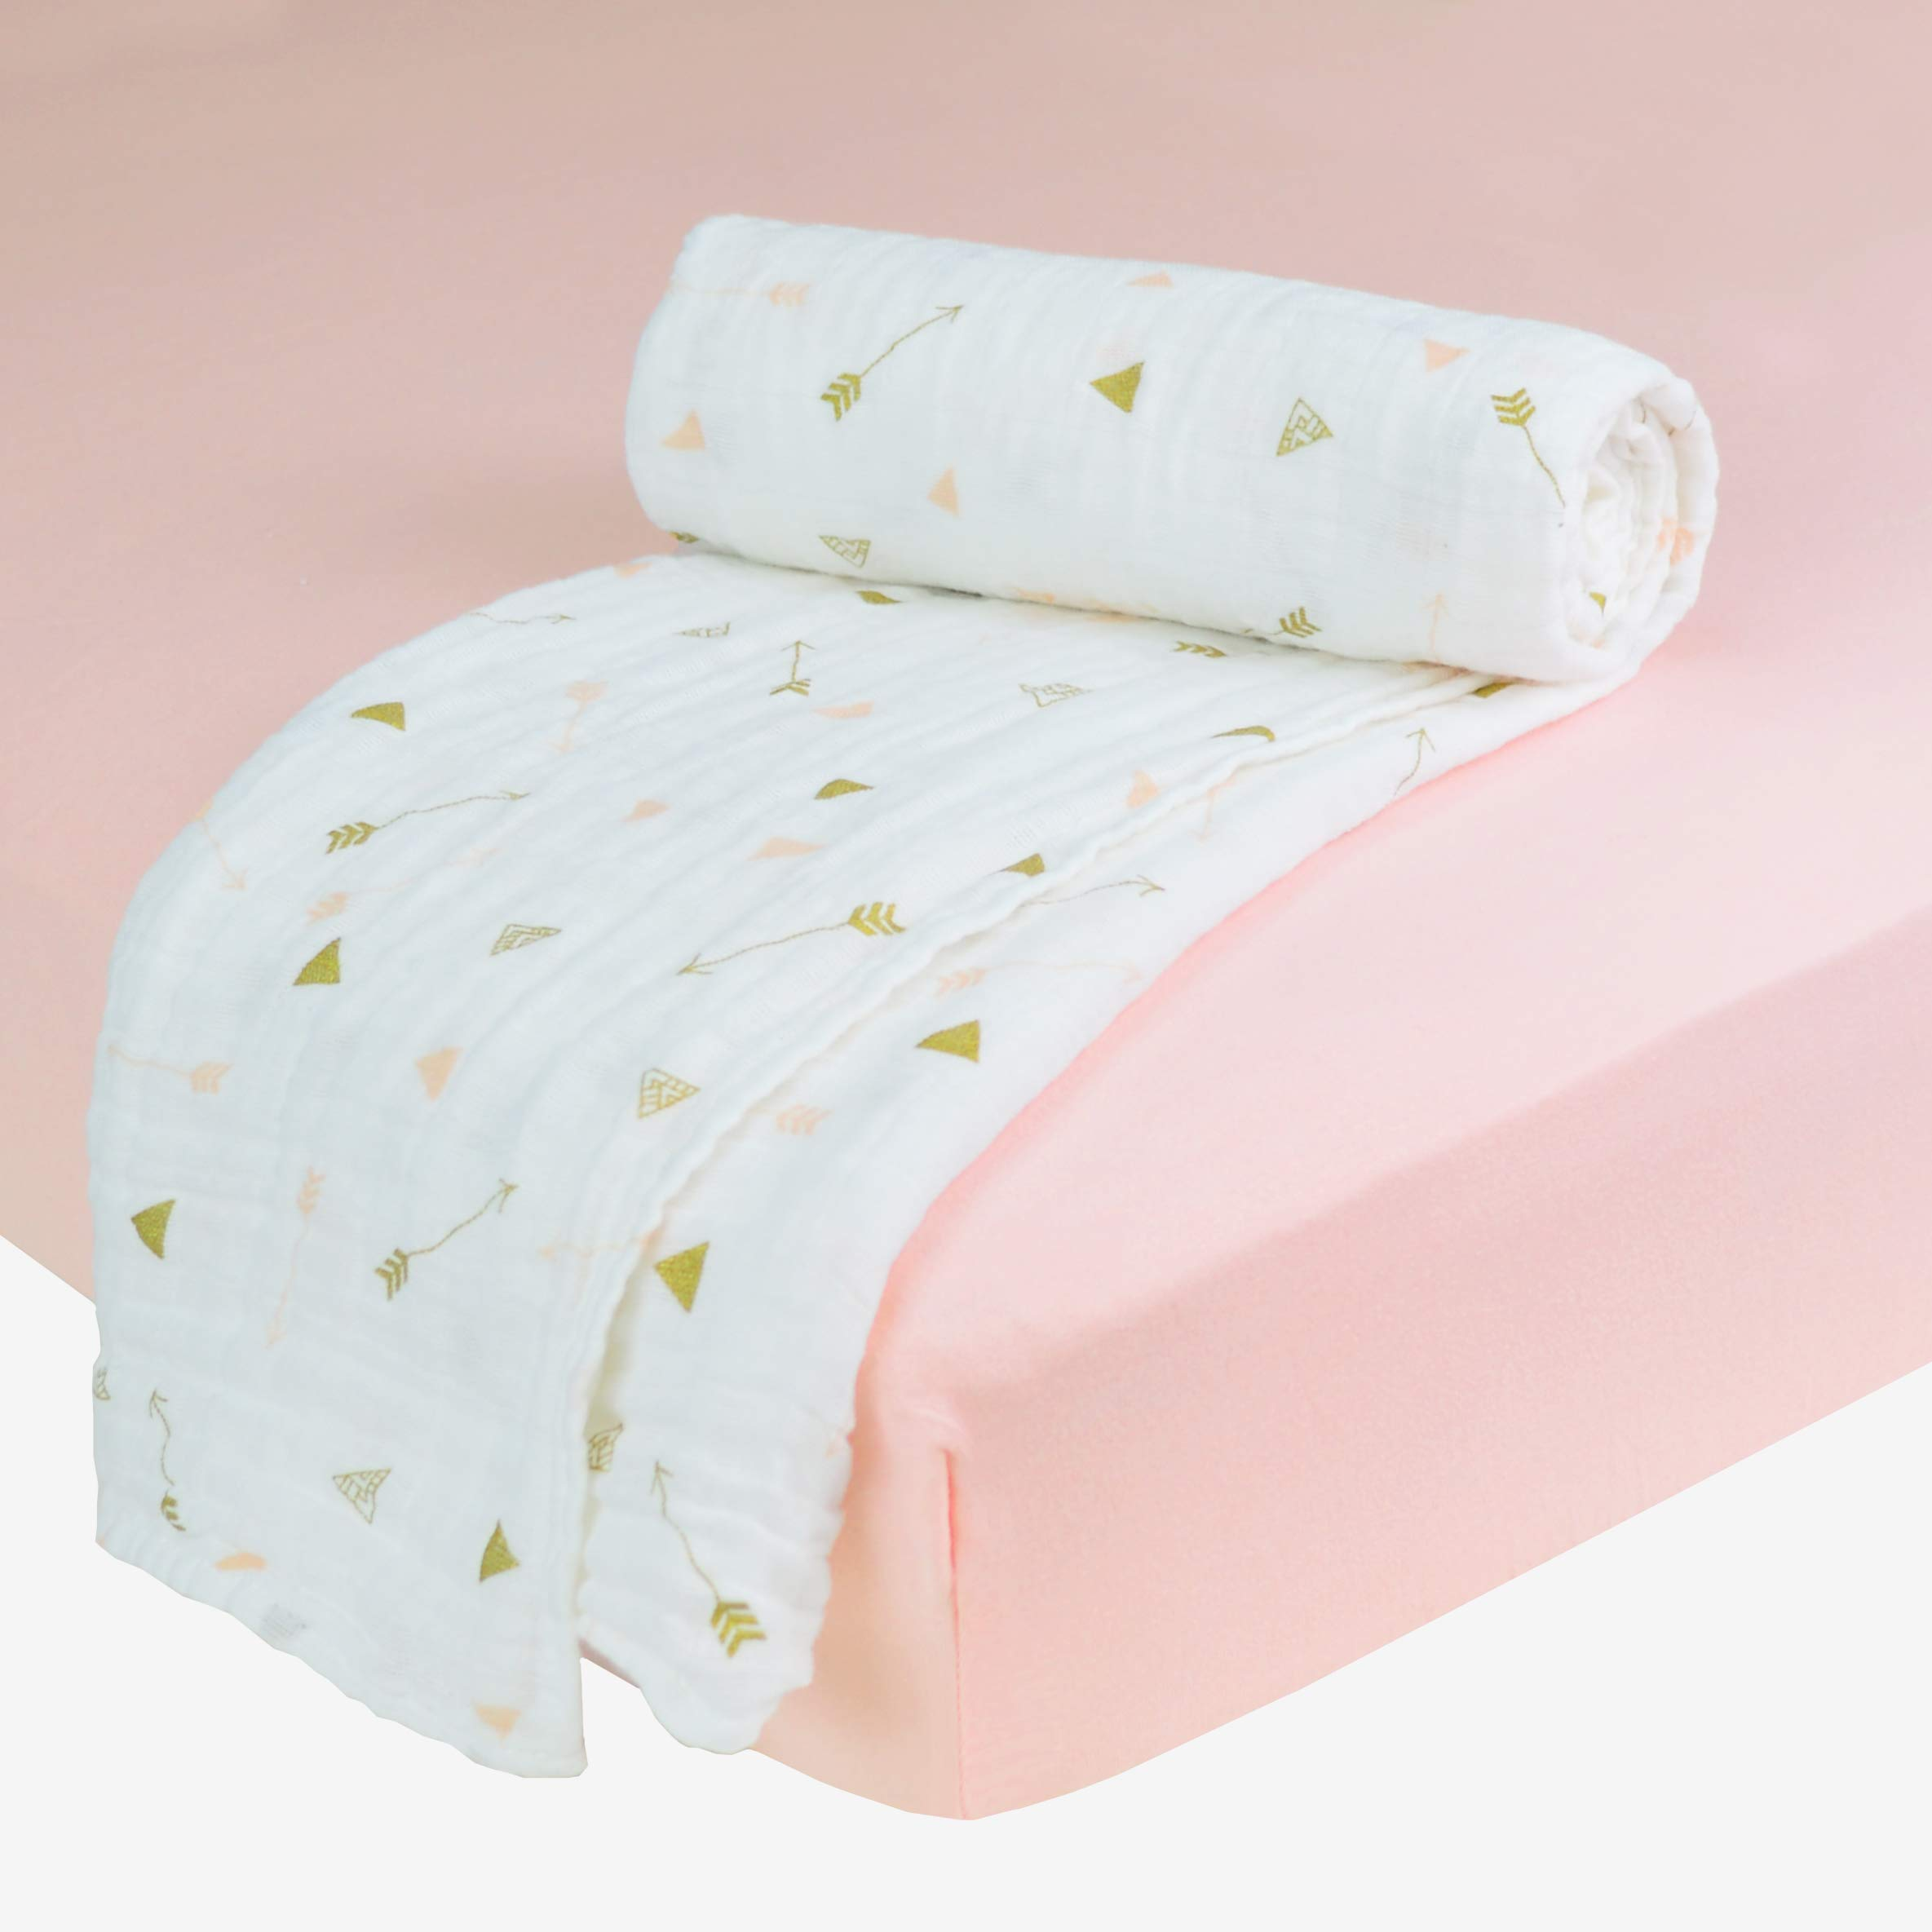 American Baby Company American Baby Company New Baby Welcome Kit with Muslin Cotton Swaddle Blanket and Fitted Pack N Play Playard Sheet, Gold/Pink/Blush